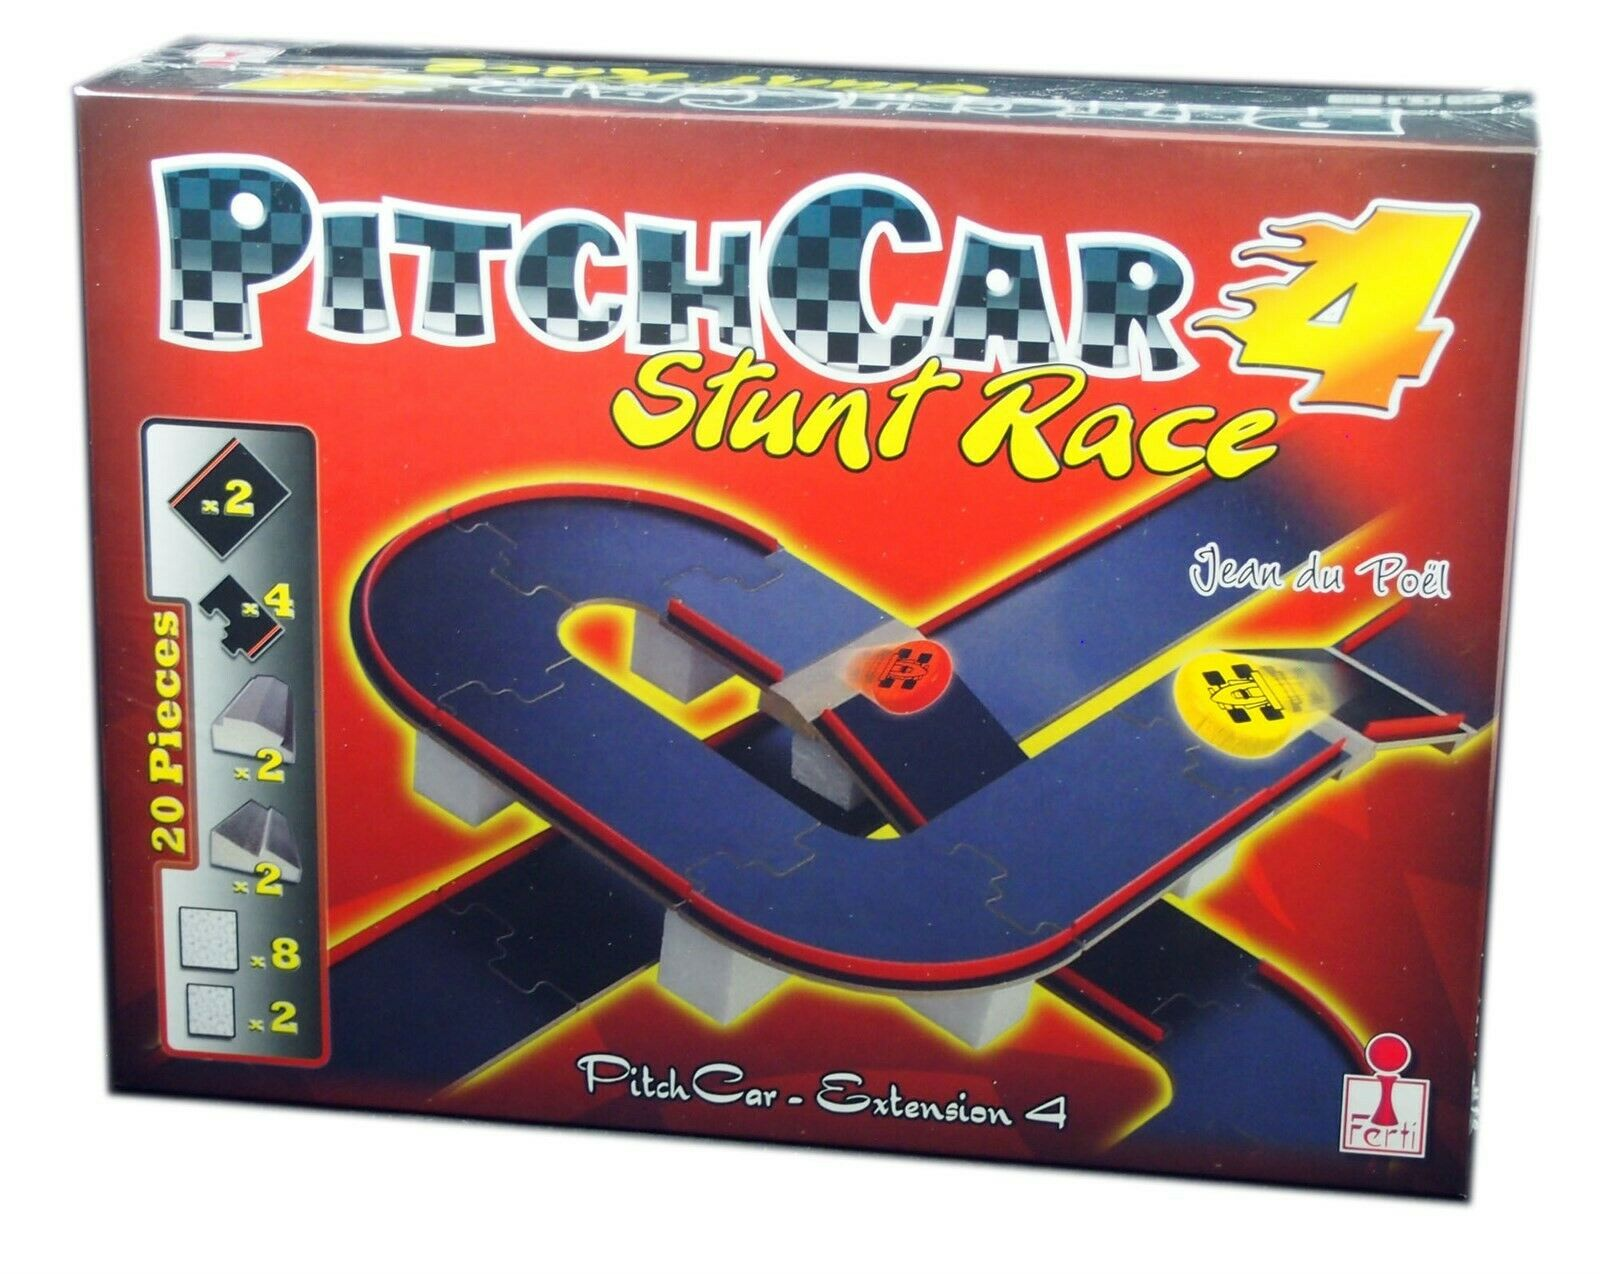 Ferti, PitchCar extension 4, Stunt Race action game, New and Sealed